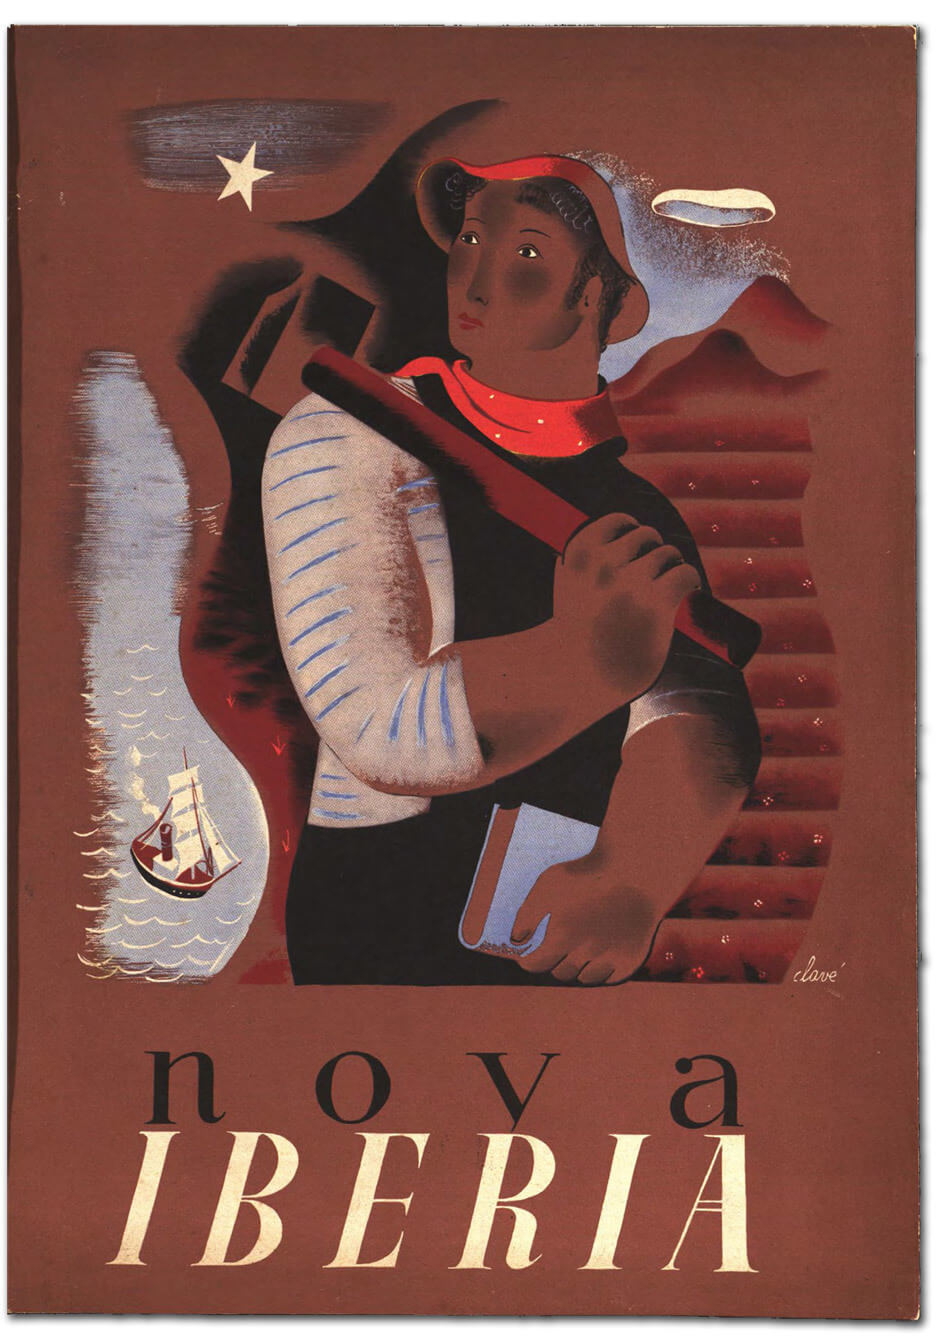 Art Canada Institute, over of the first issue of the anti-fascist Spanish publication Nova Iberia (January 1937)